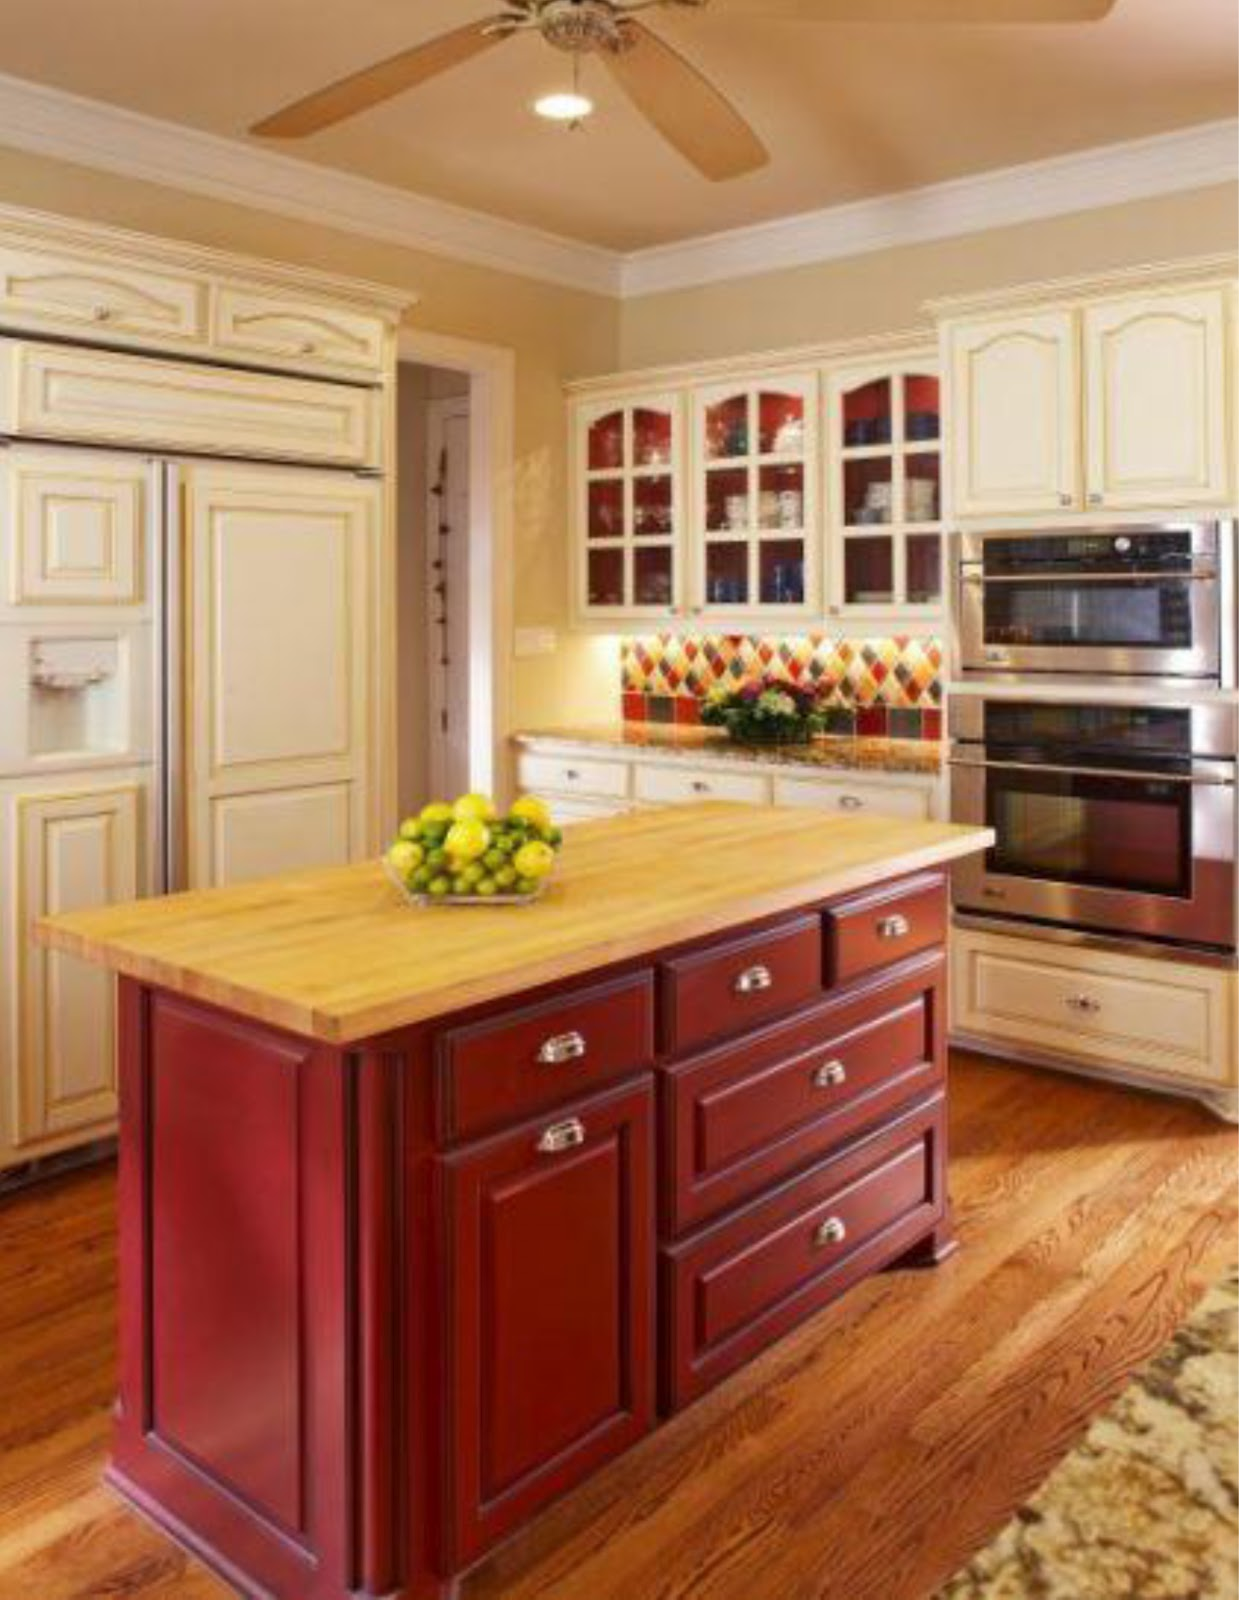 Simplifying remodeling june 2012 for Kitchen cabinets pictures